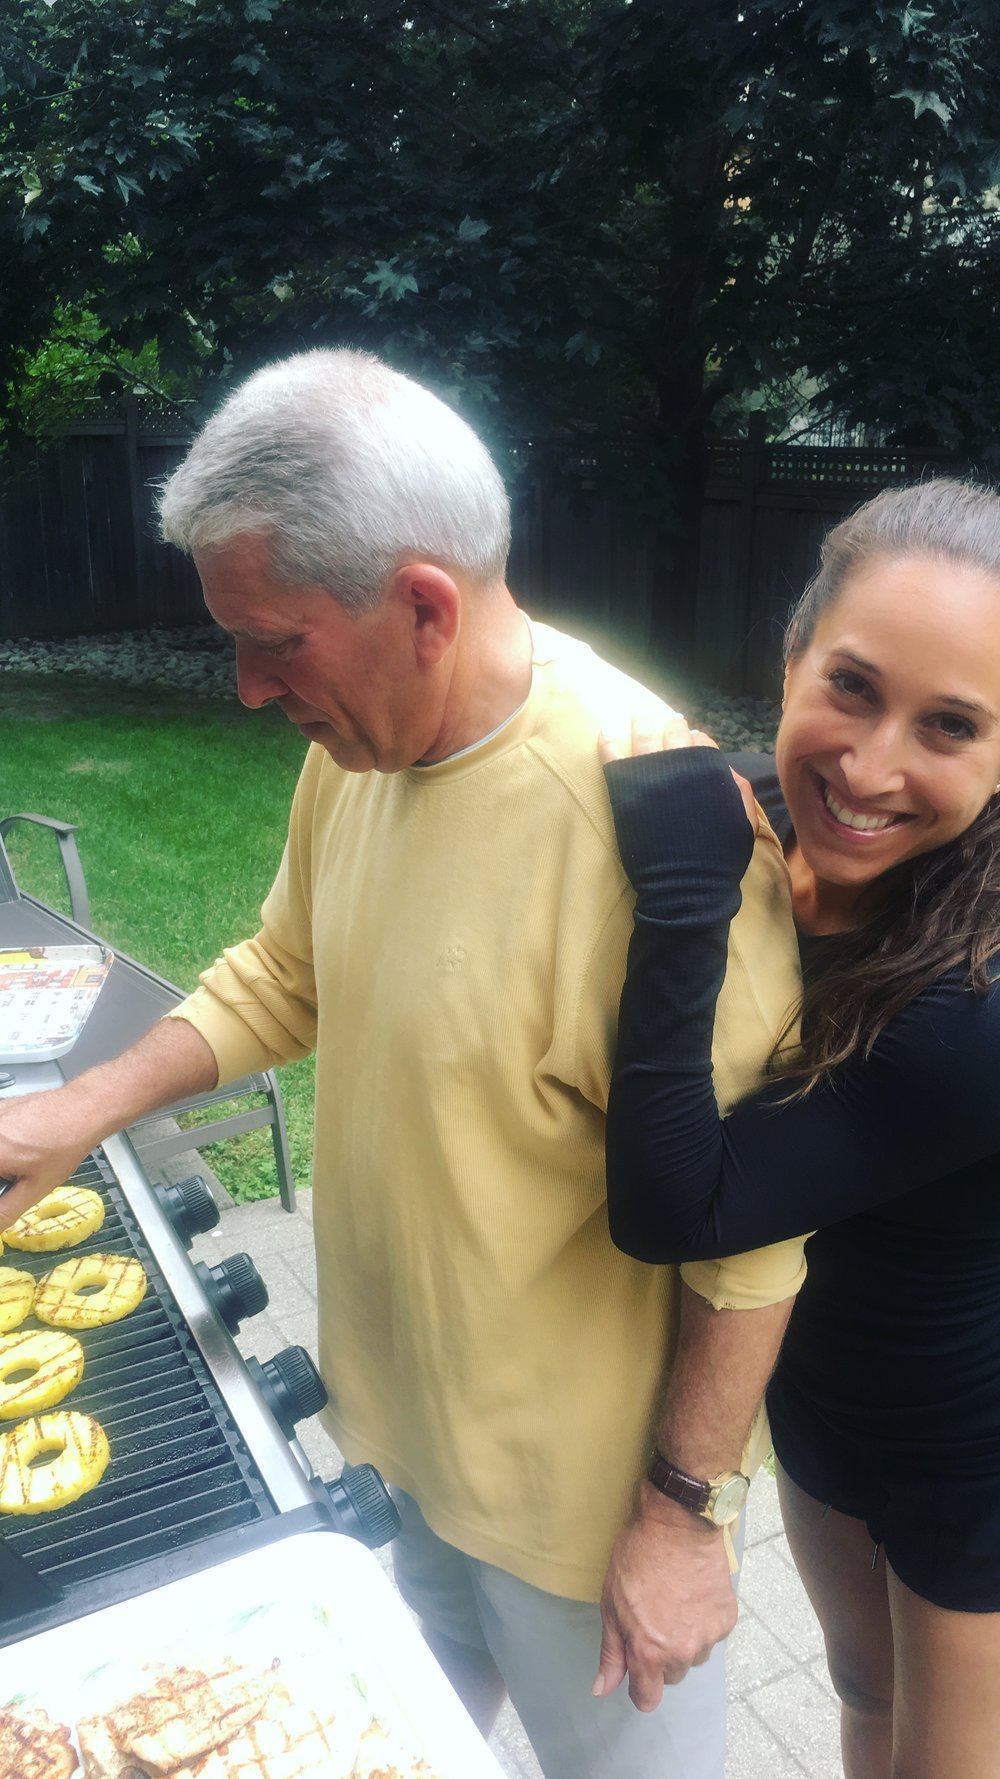 The BBQ Dad - Before going viral as the